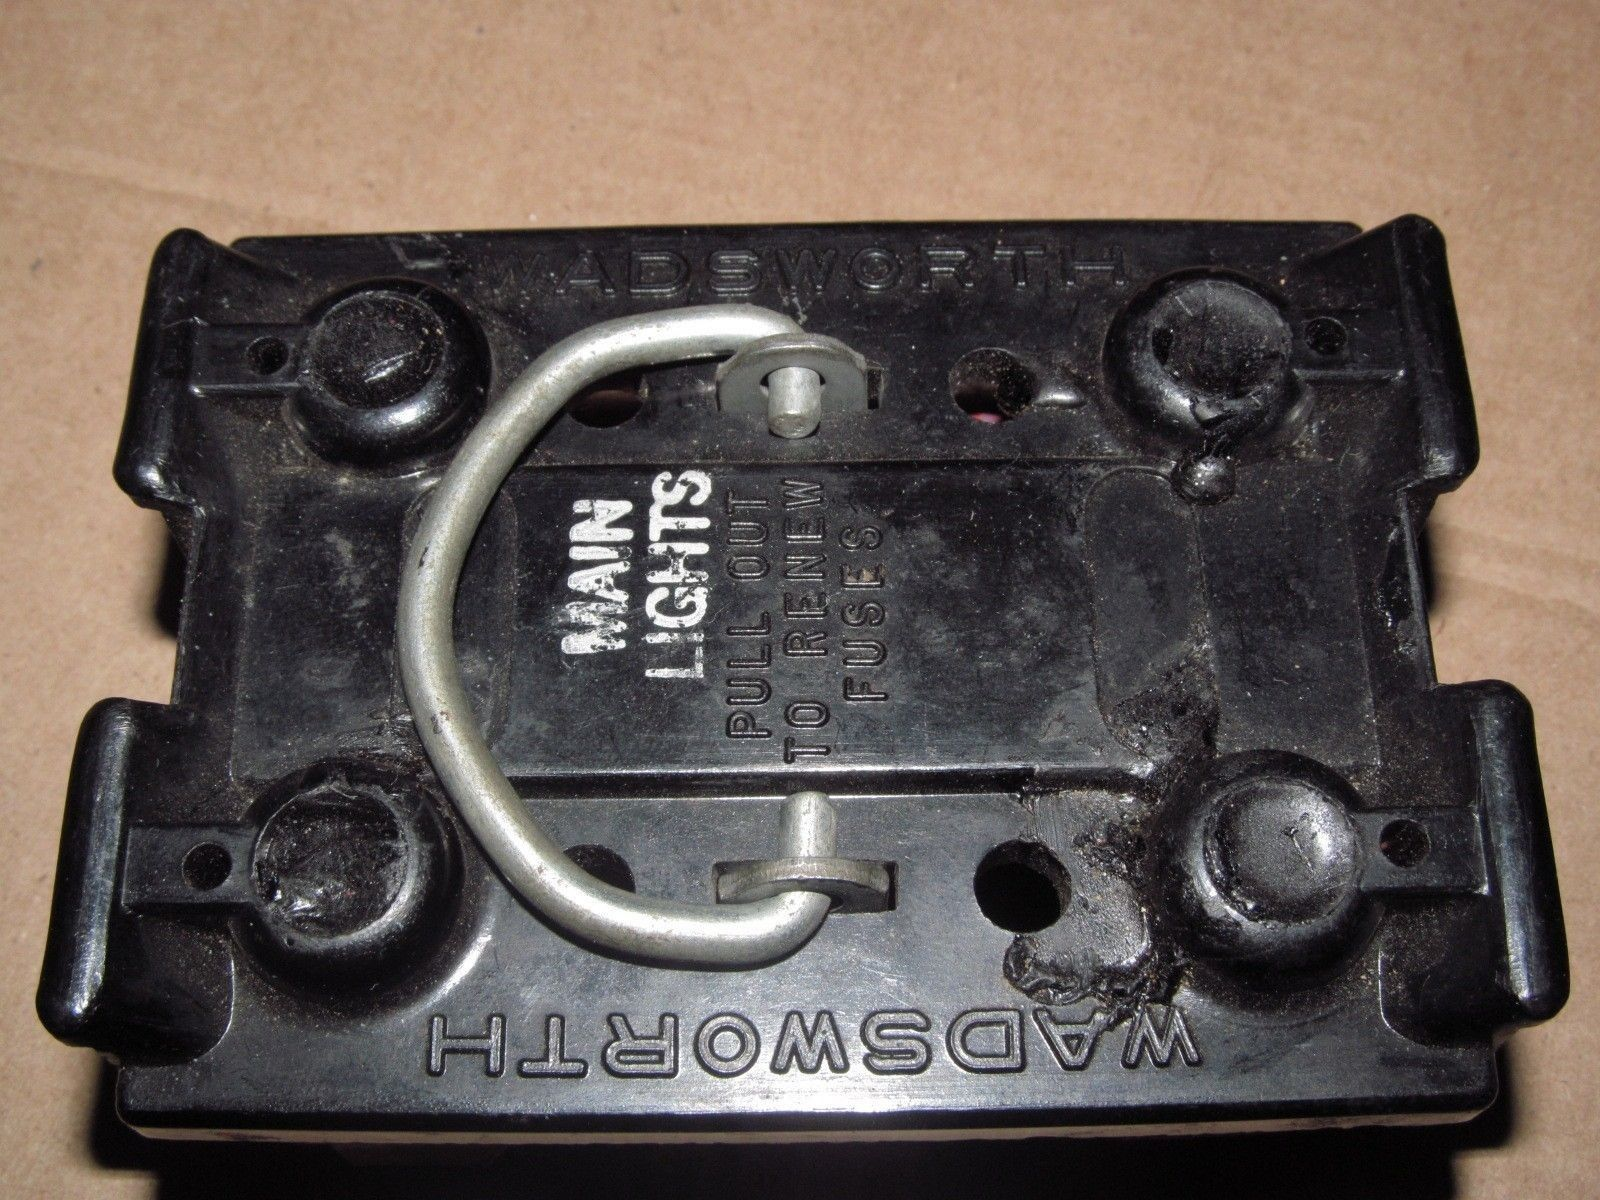 30 Amp Pull Out Fuse Box Another Blog About Wiring Diagram 60 Wadsworth Holder Free 60a 30a